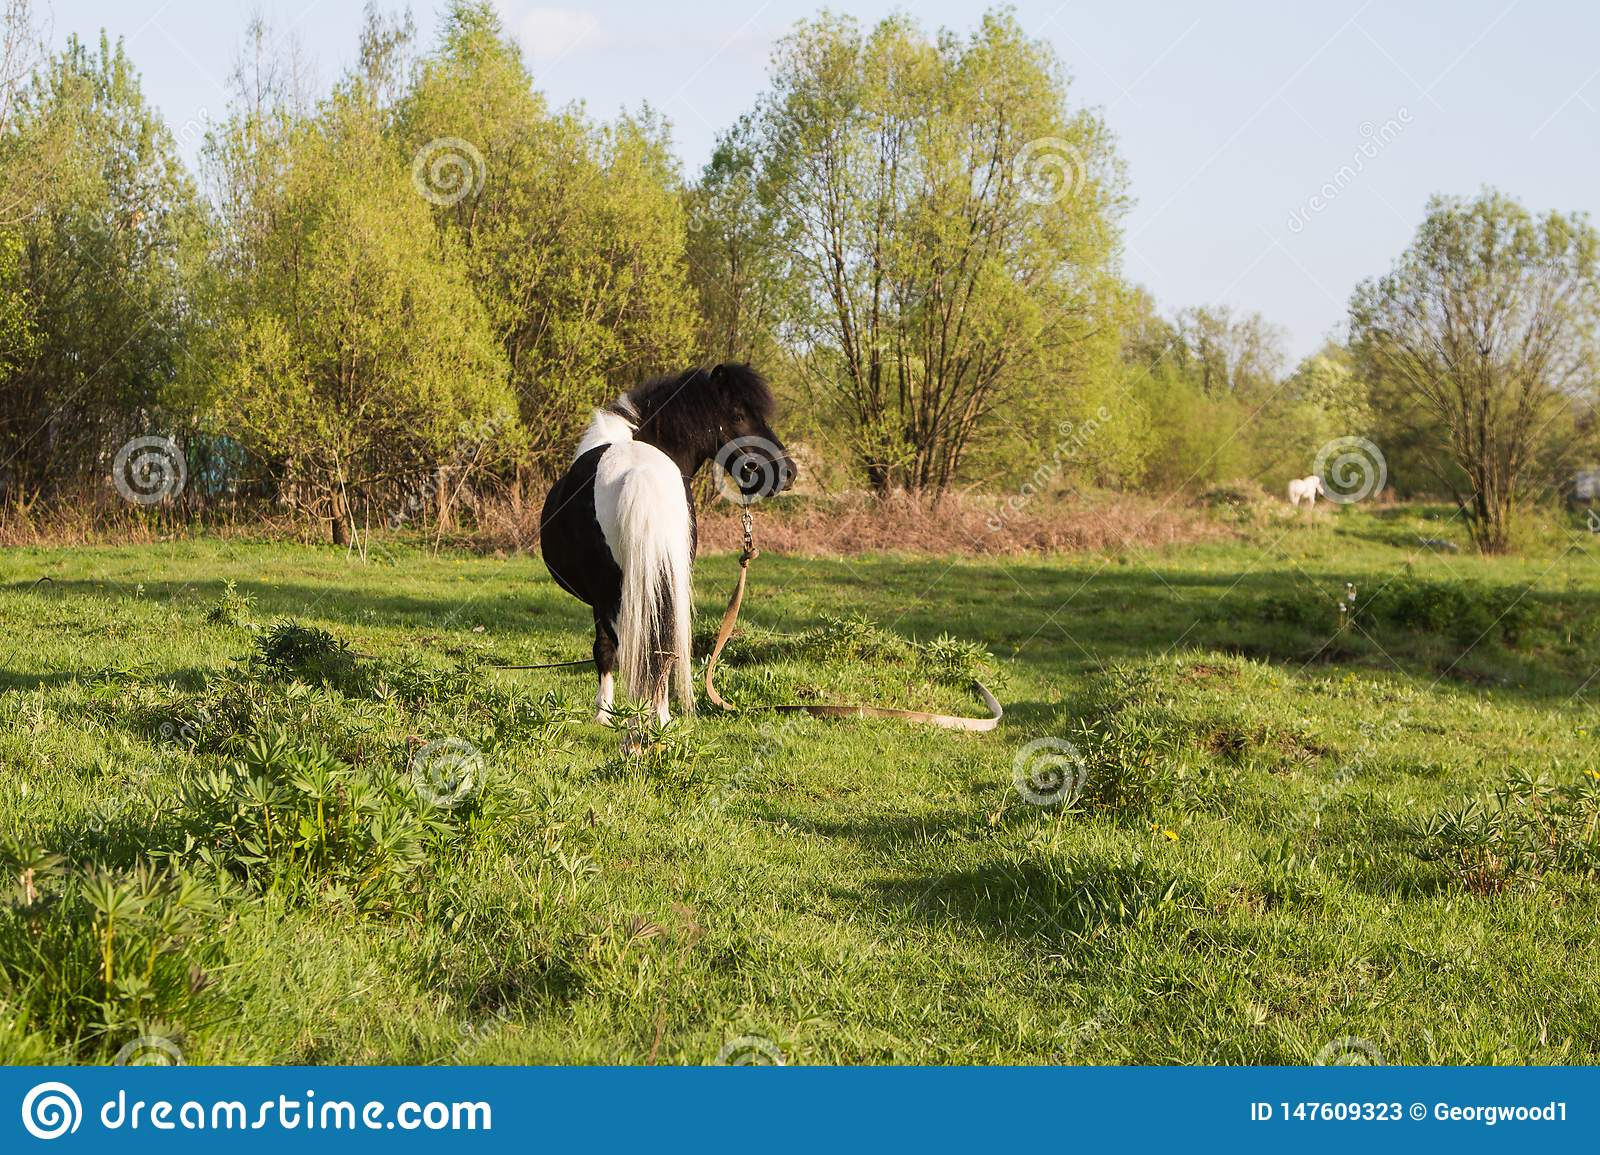 Black and white horse breed pony. Horses graze in the meadow. The horse is eating grass.